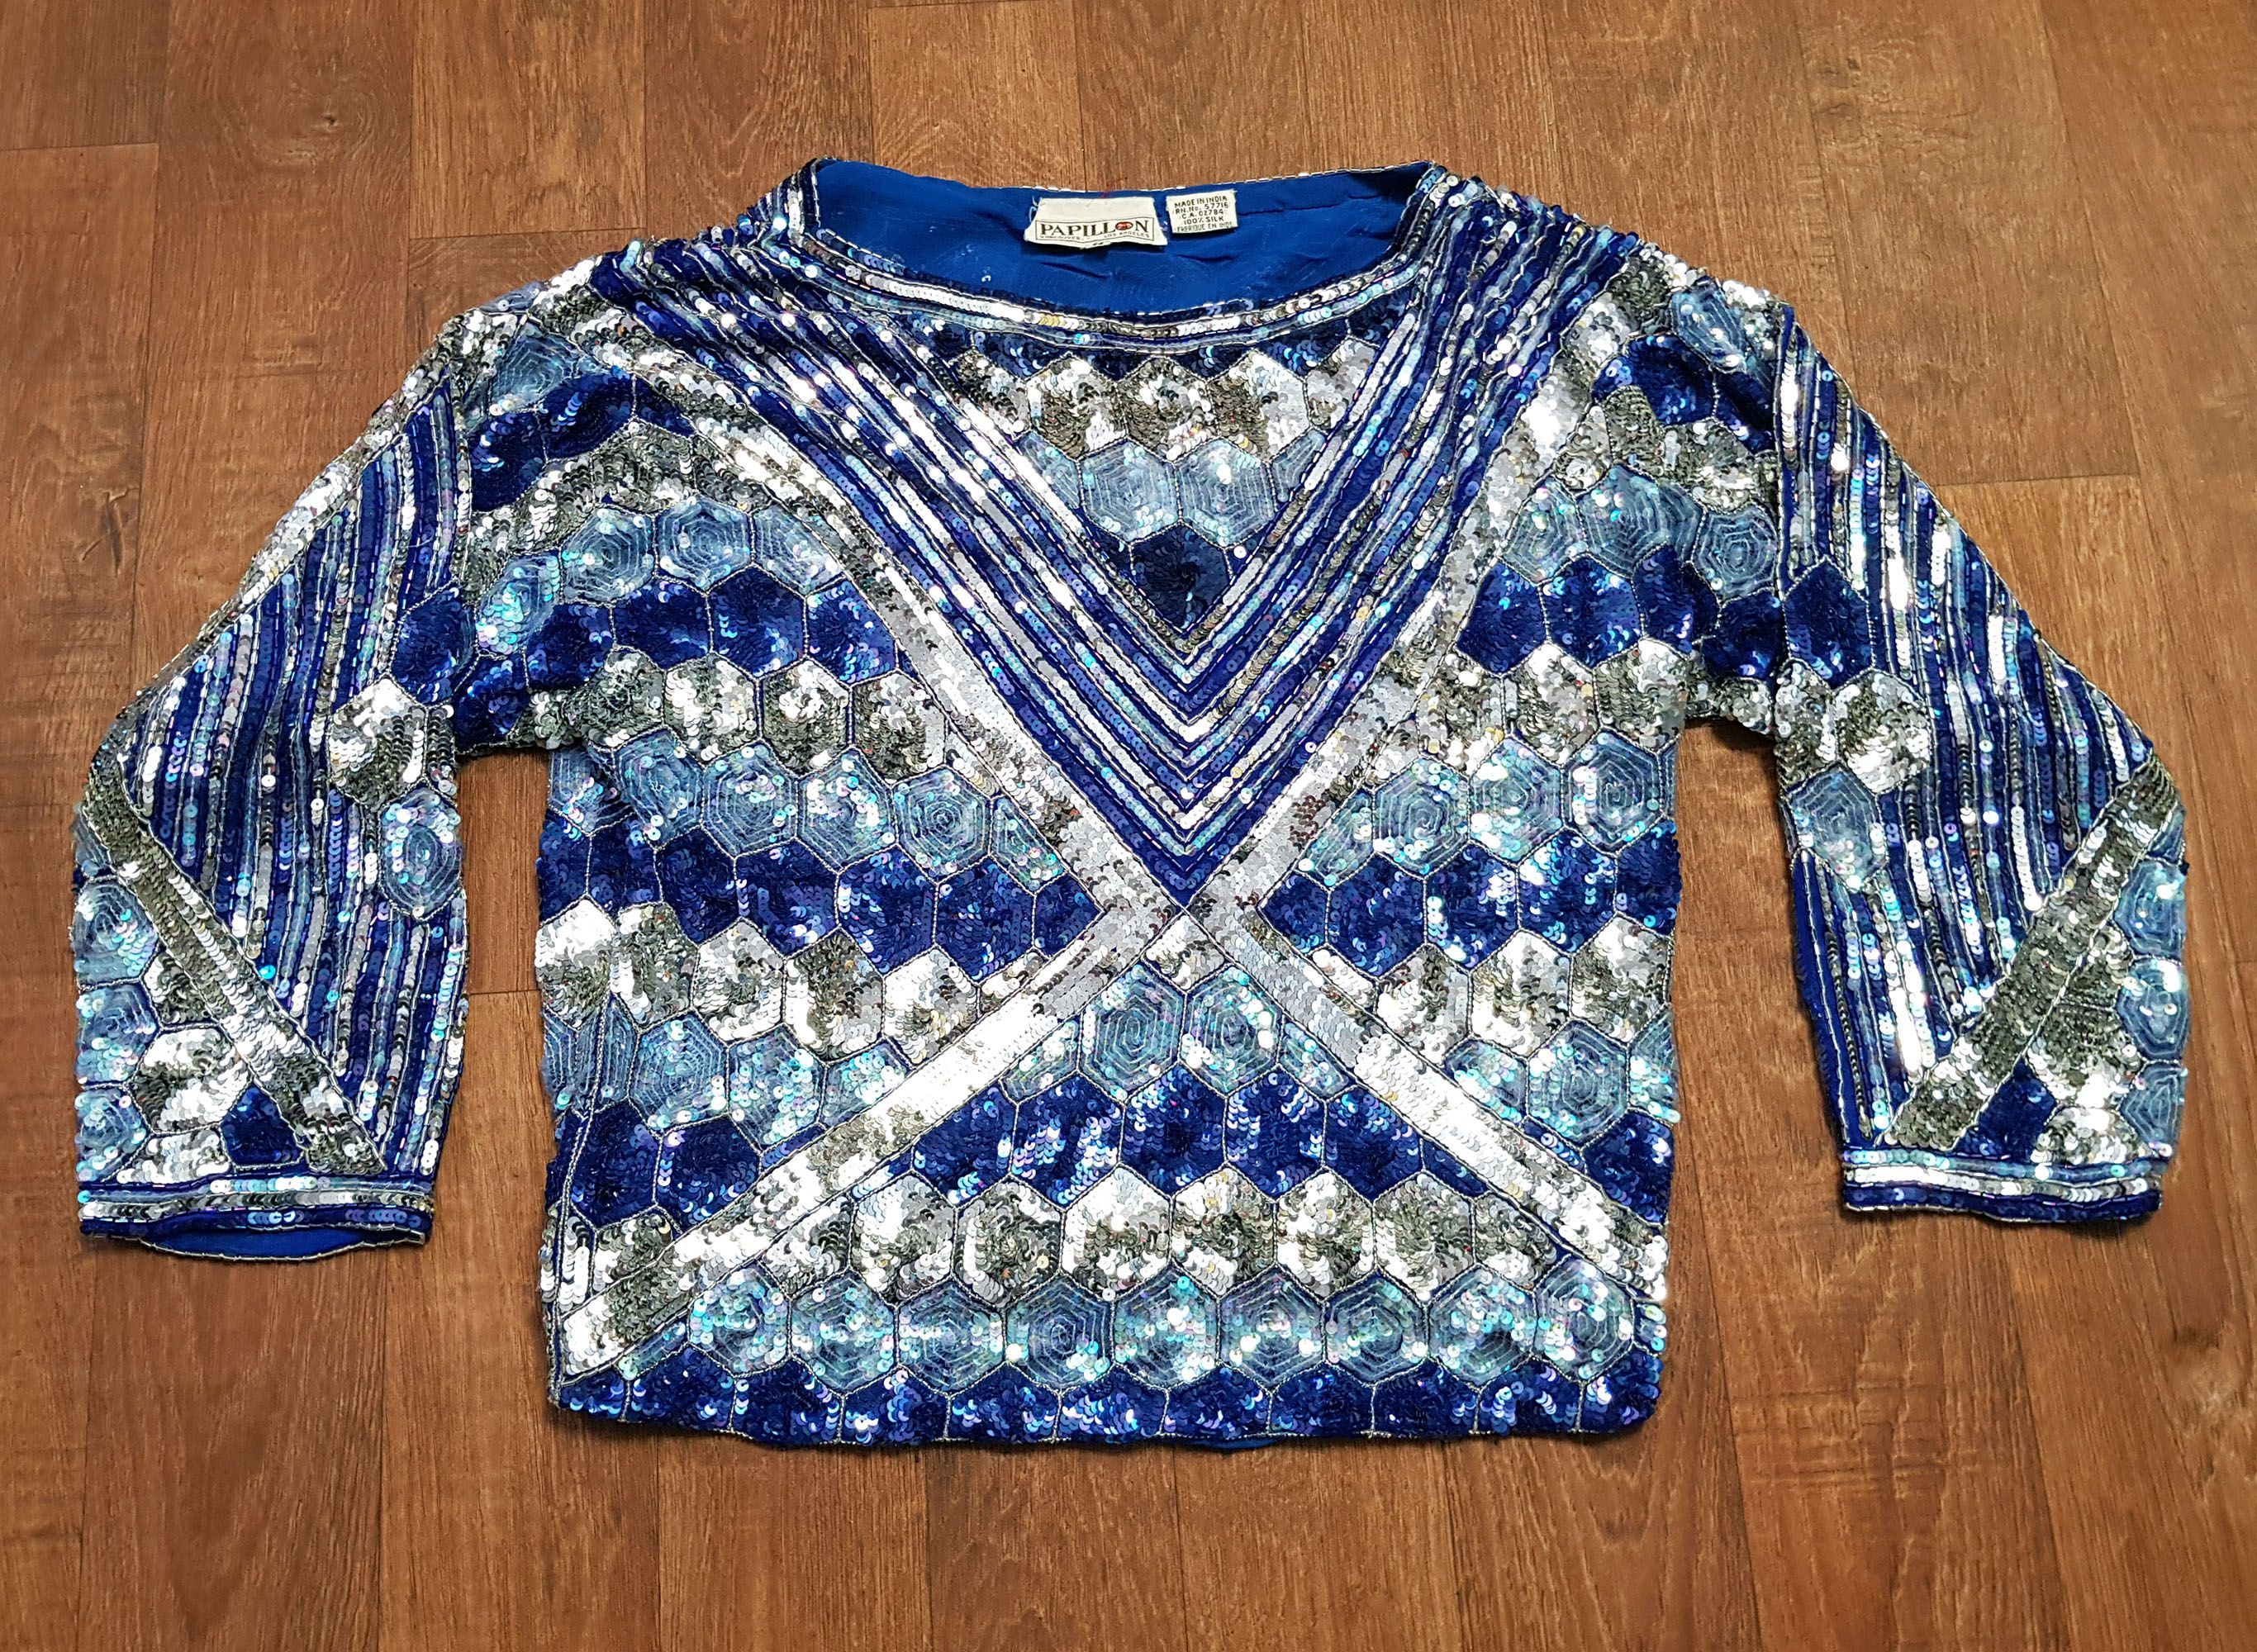 Stunning 1980s Vintage High Sparkle Sequin Top Vintage Clothing Vintage Outfits Vintage Sequin Top Vintage Tops